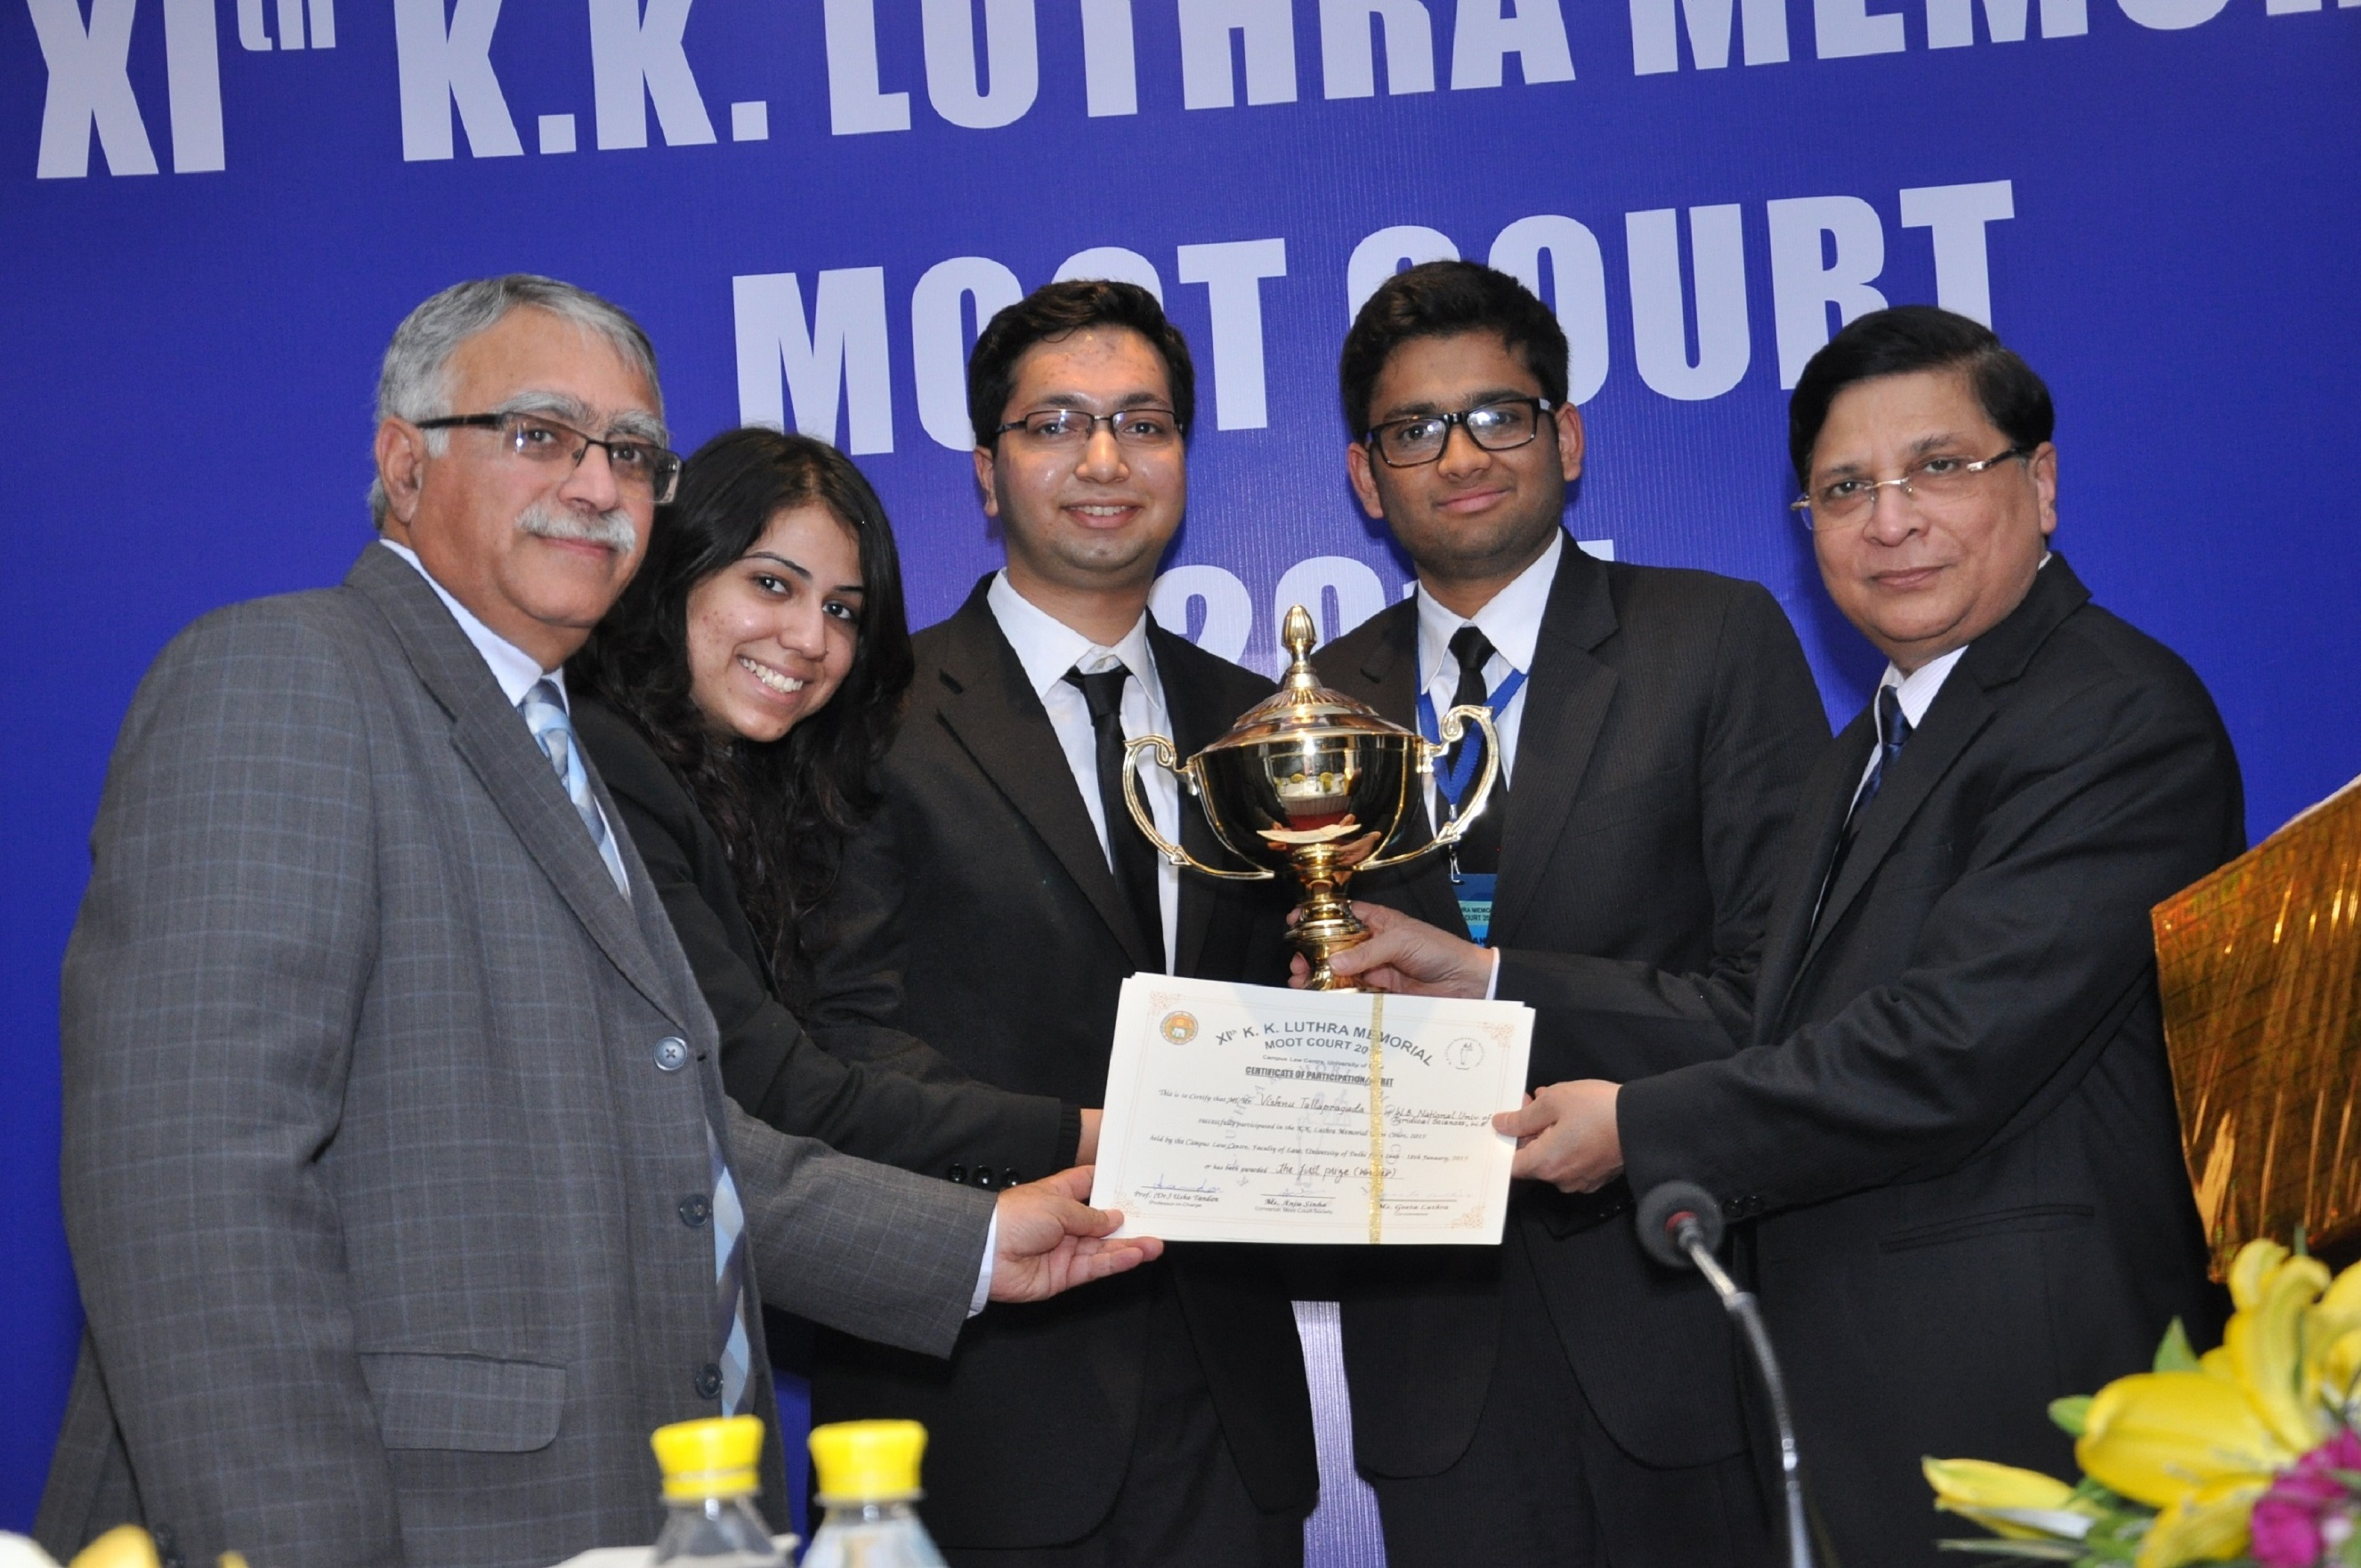 Interview: Winning Team [NUJS Kolkata] of KK Luthra National Moot 2015